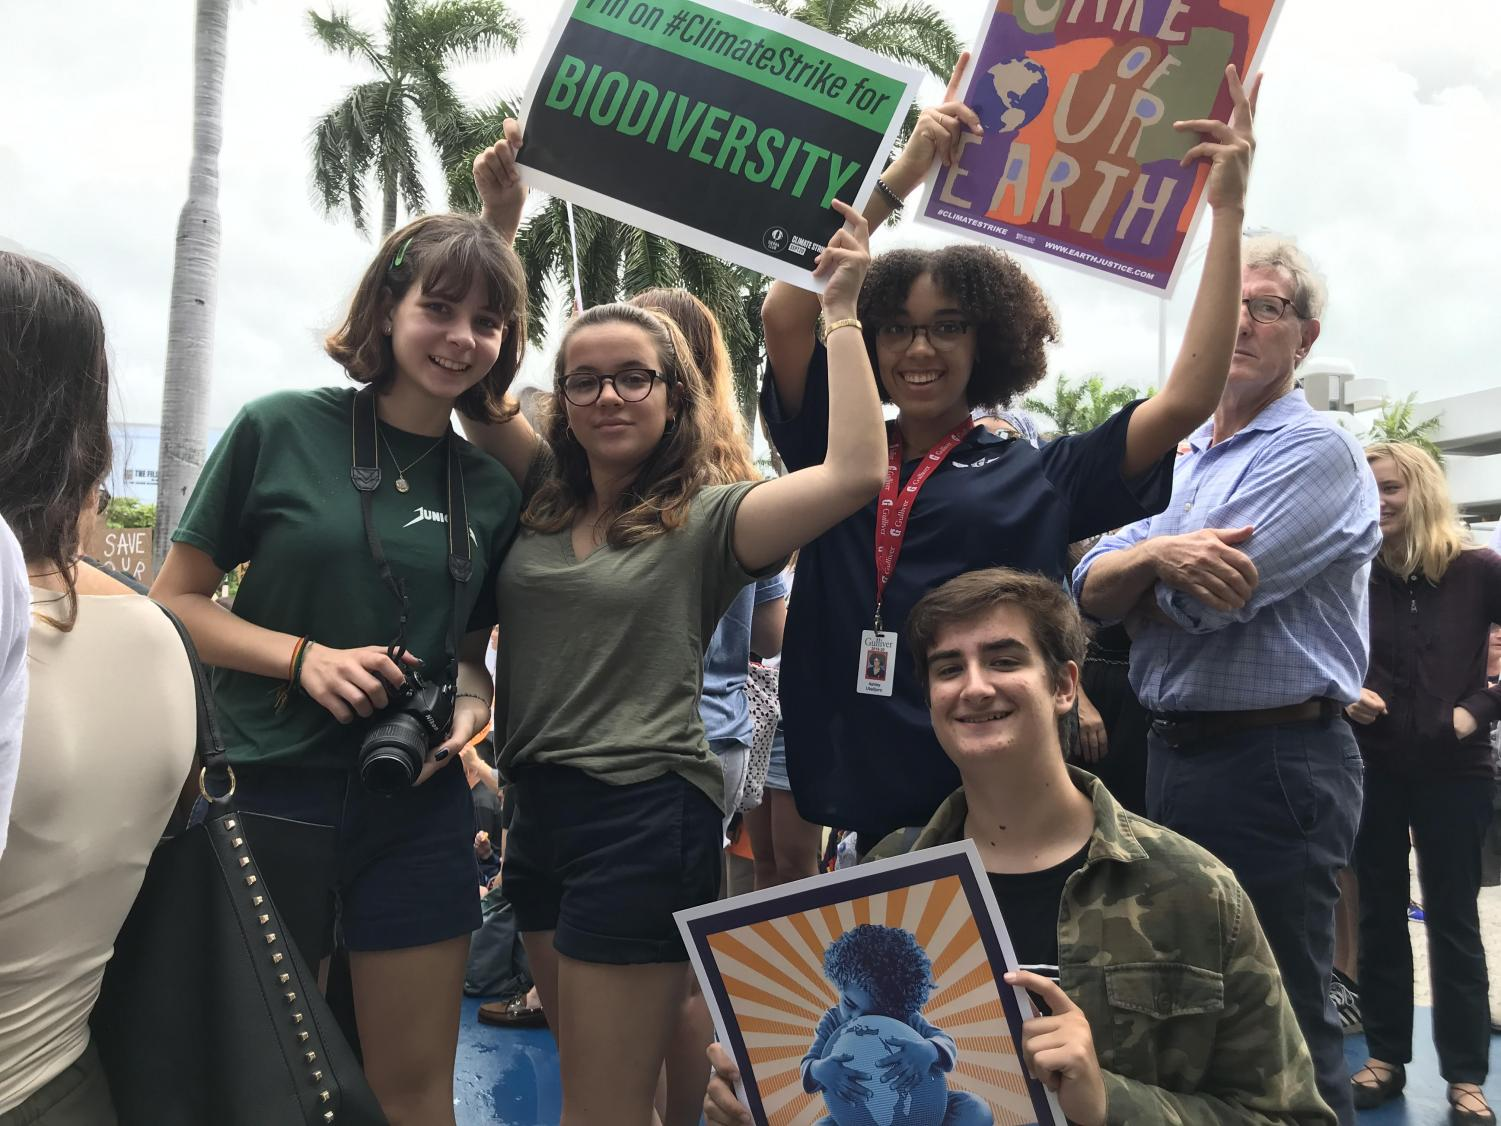 Gulliver students Laura Attarian, Ashley Ubalijoro, Alessia Bianco, and Pedro Schmeil participate in the September Fridays for Future climate strike.